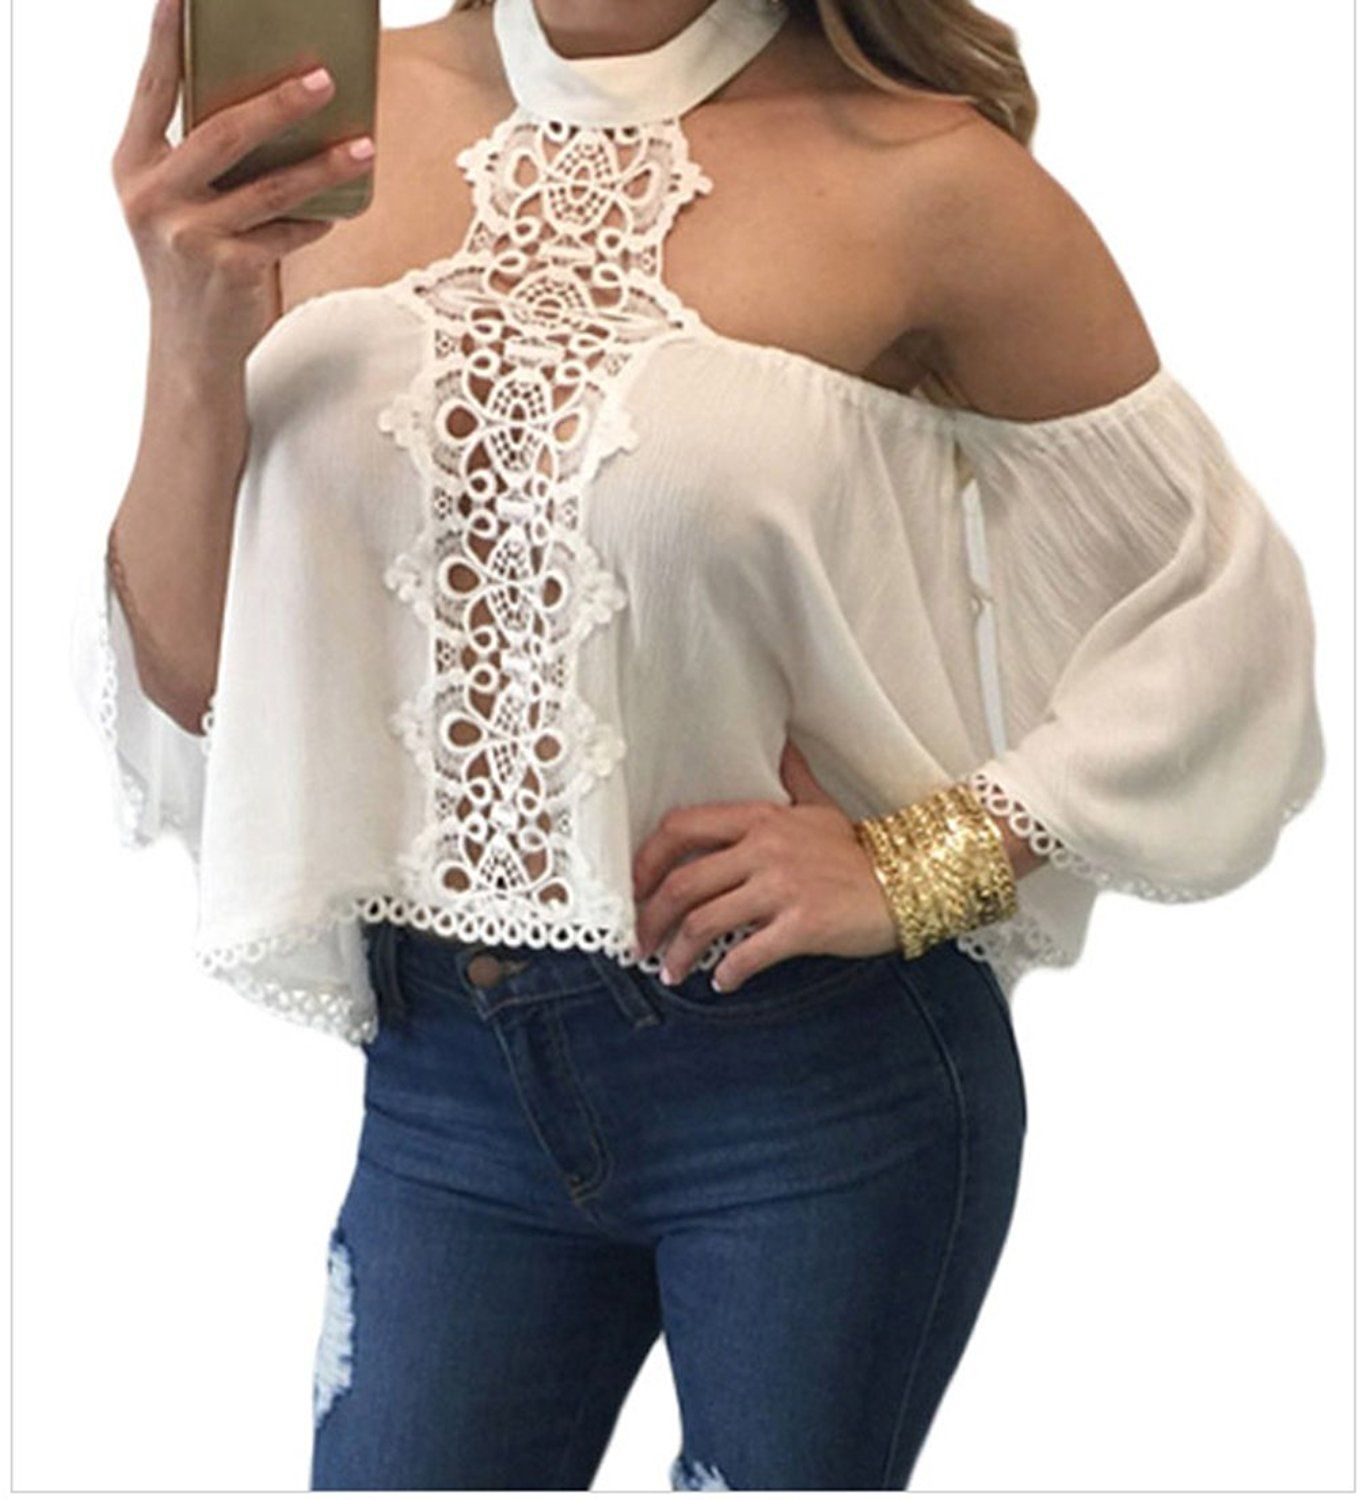 d992a68aa7dd7a Christmas YFFaye Women s White Chocker Neck Bare Shoulders Flare Crop Top      For more information